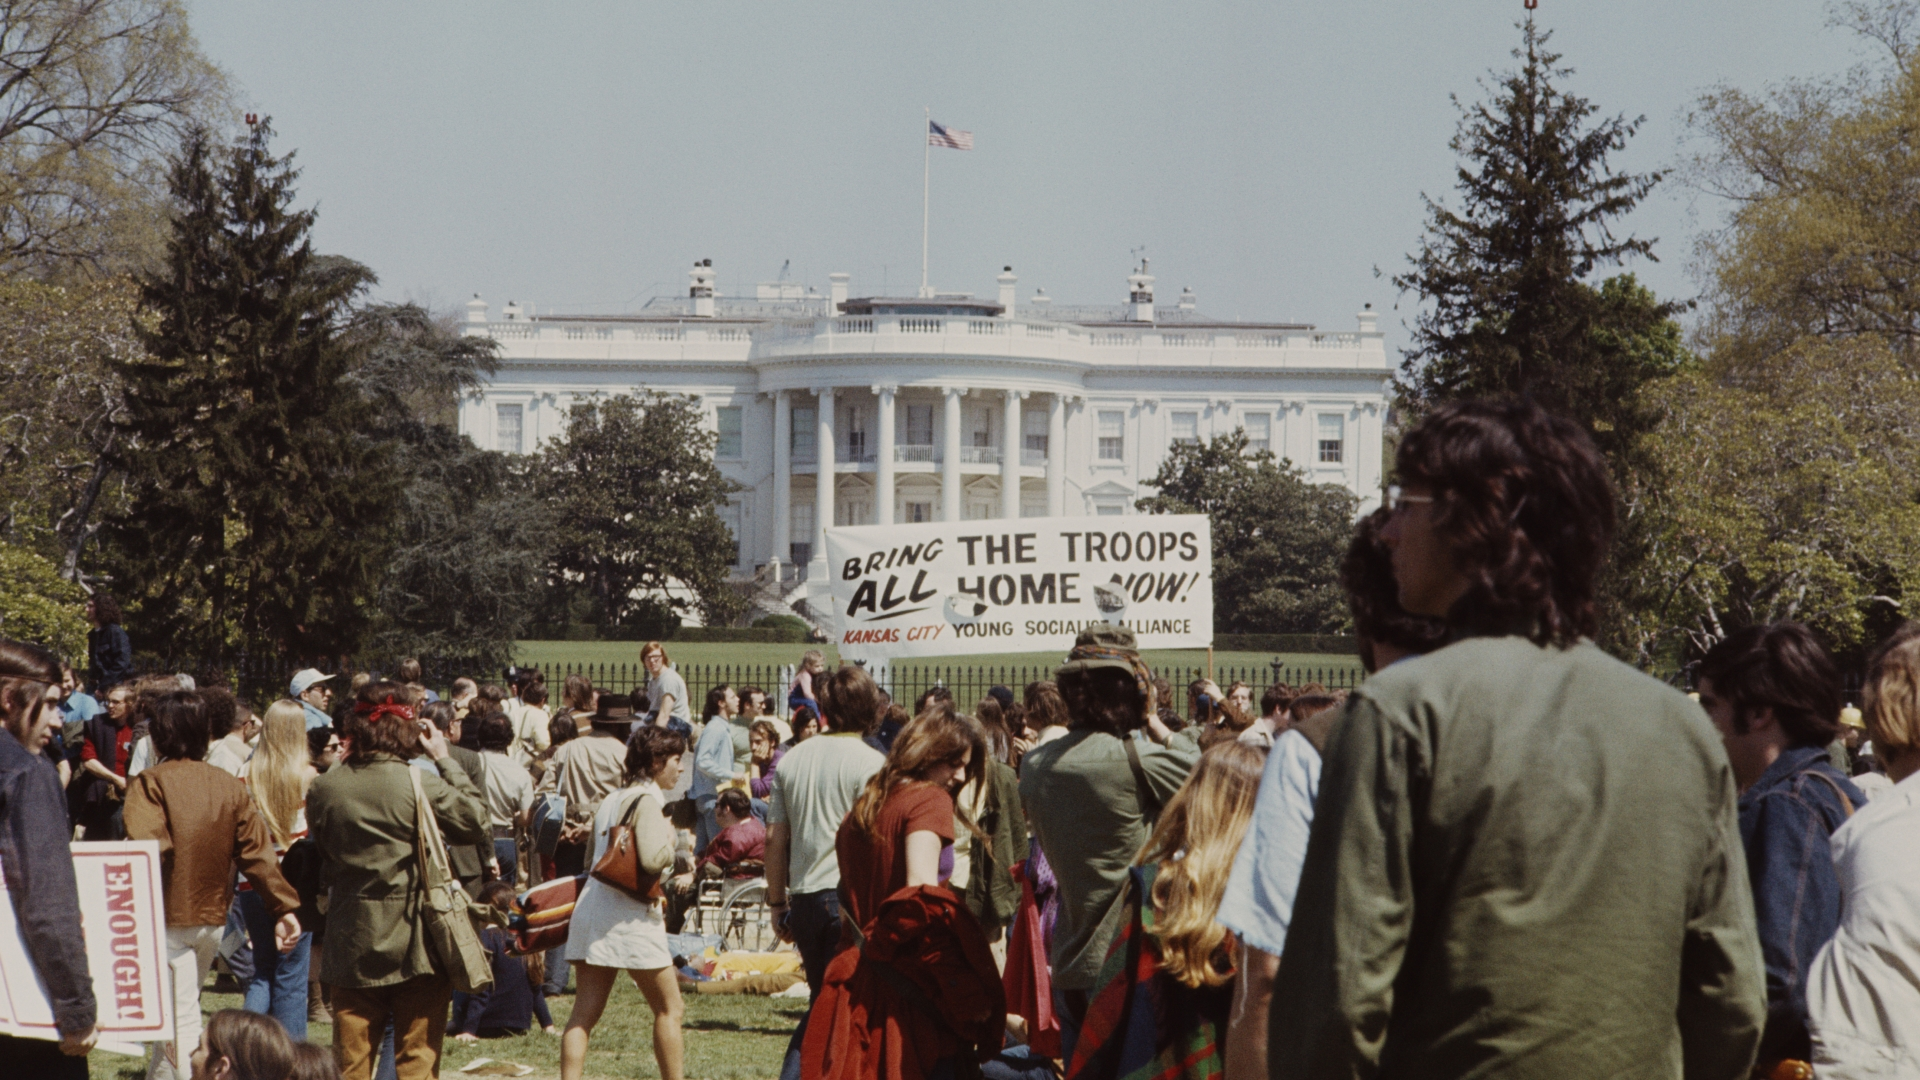 View of anti Vietnam War demonstrators standing and protesting outside the White House during a march to the Pentagon in Washington DC to plead for an end to the conflict, 1967. (Credit: Rolls Press/Popperfoto/Getty Images)